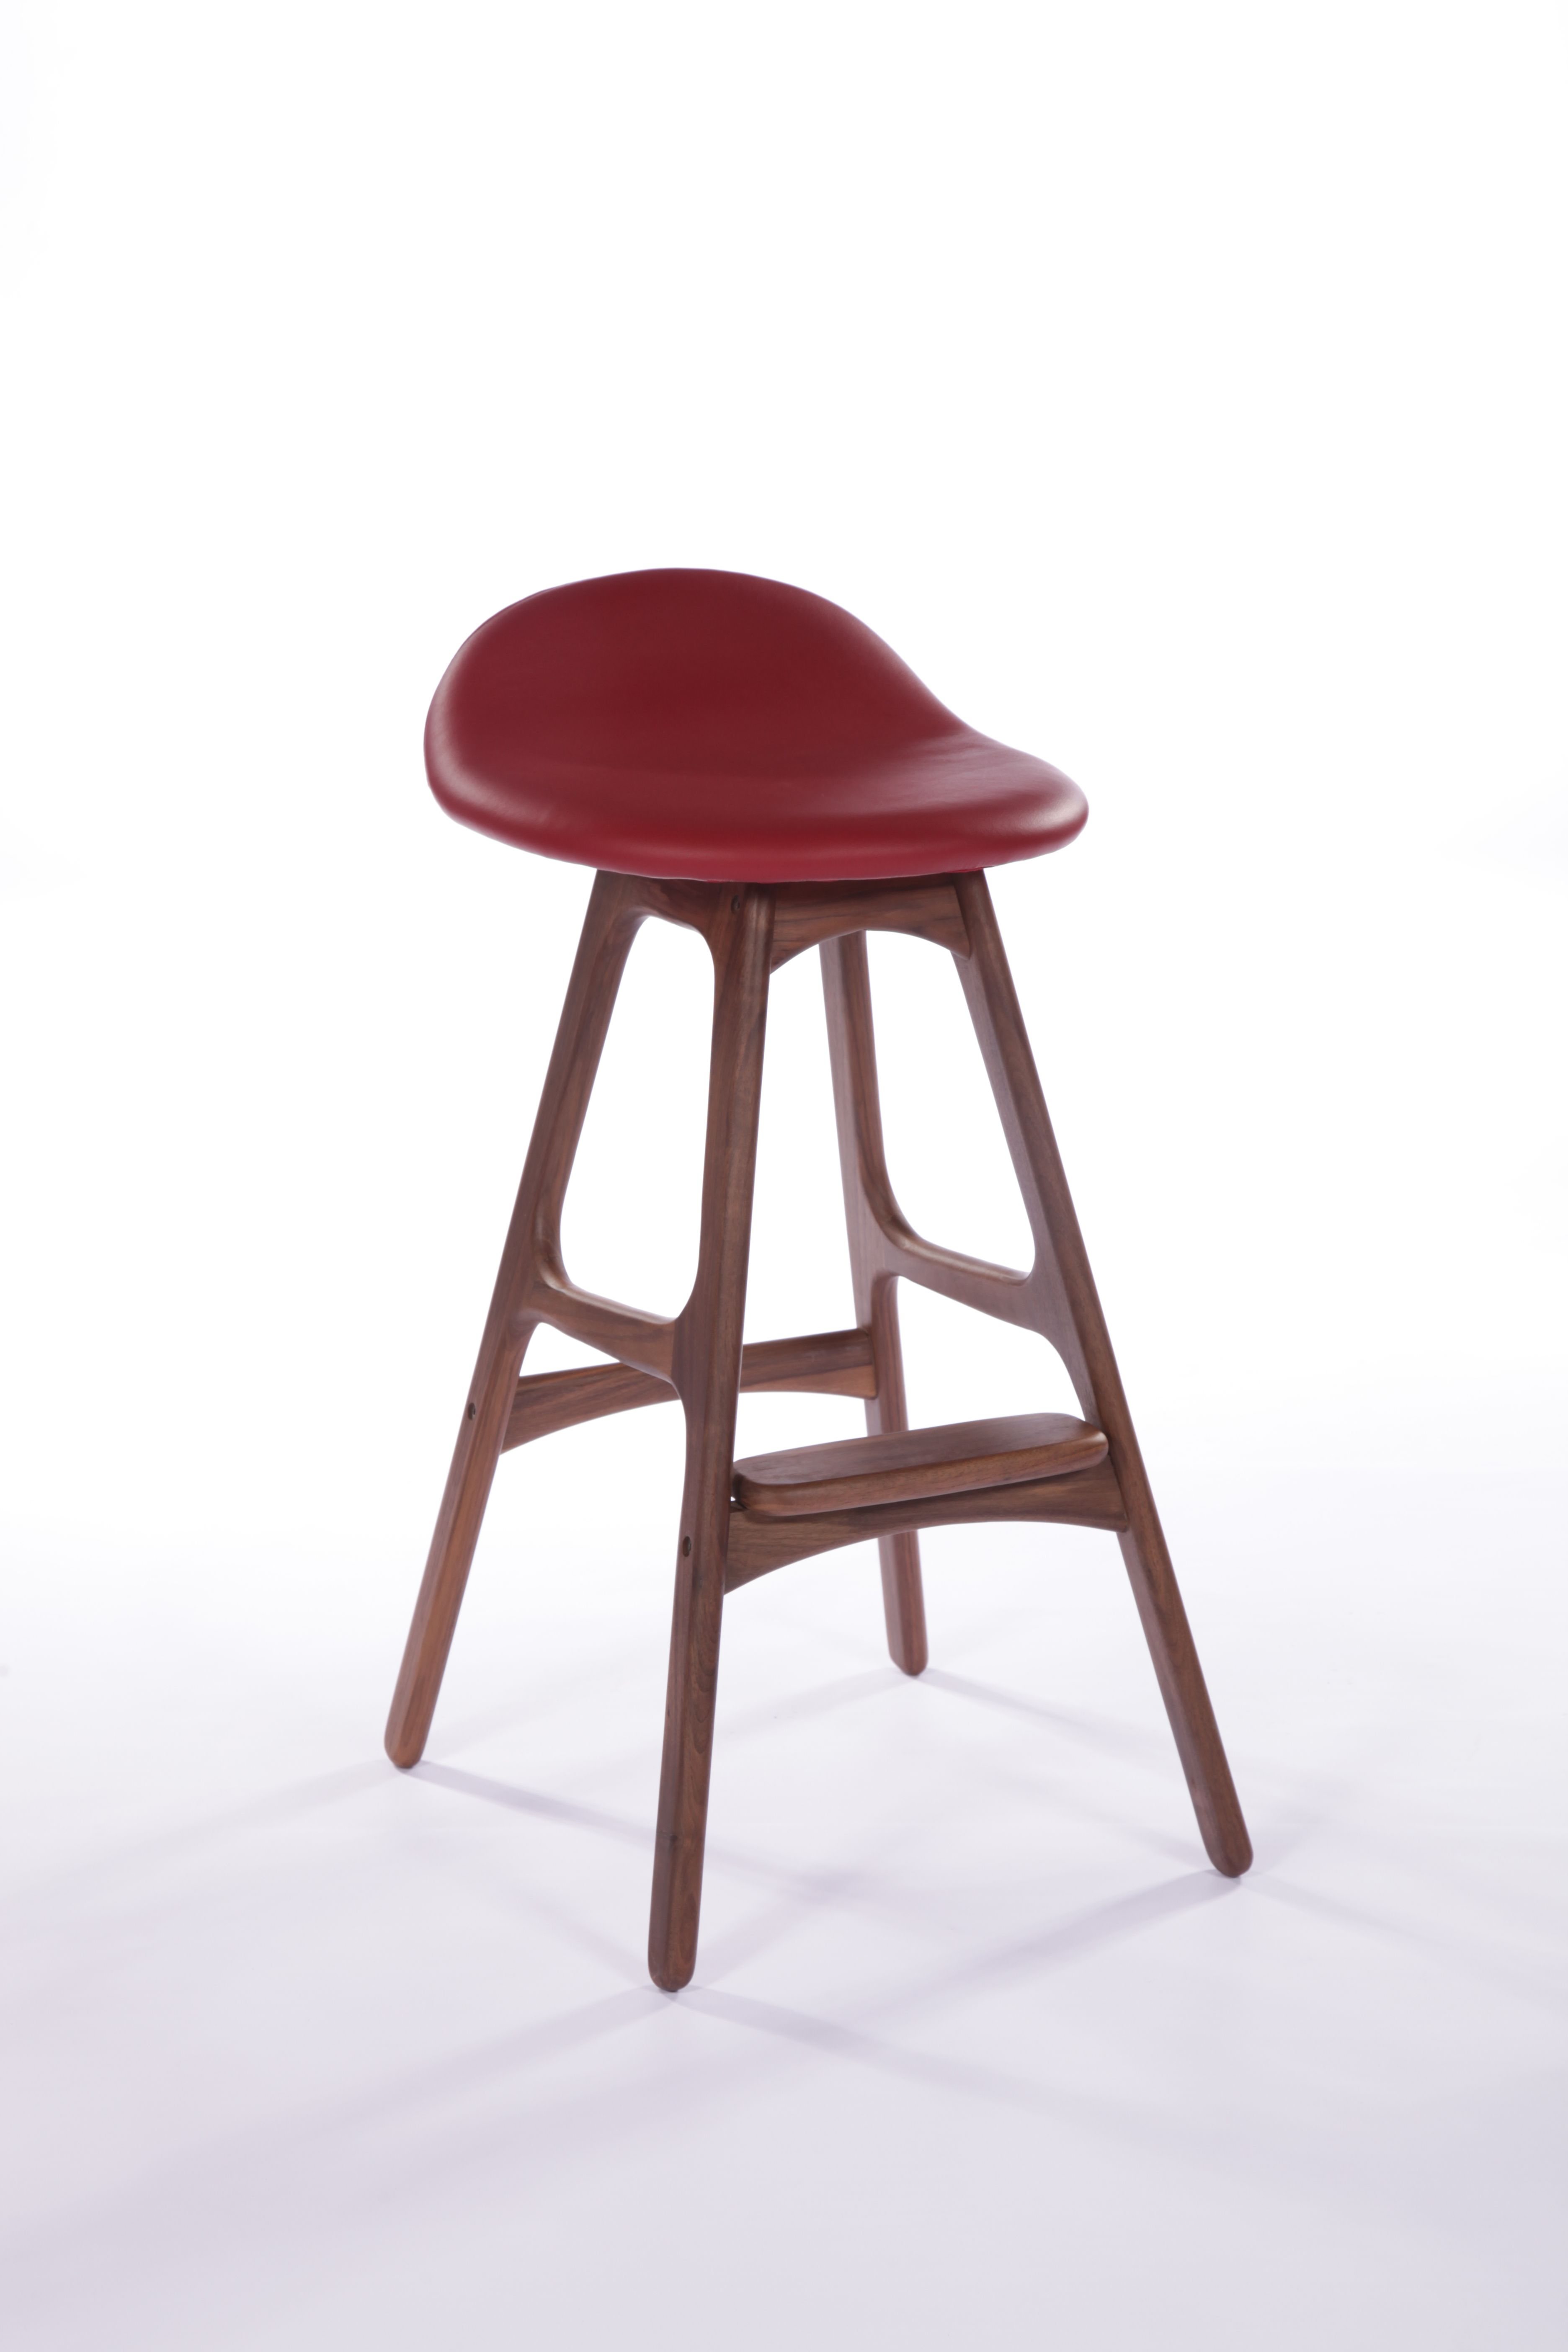 Replica Erik Buch Leather Counter Stool $349 Httpwwwlifeinteriorscom